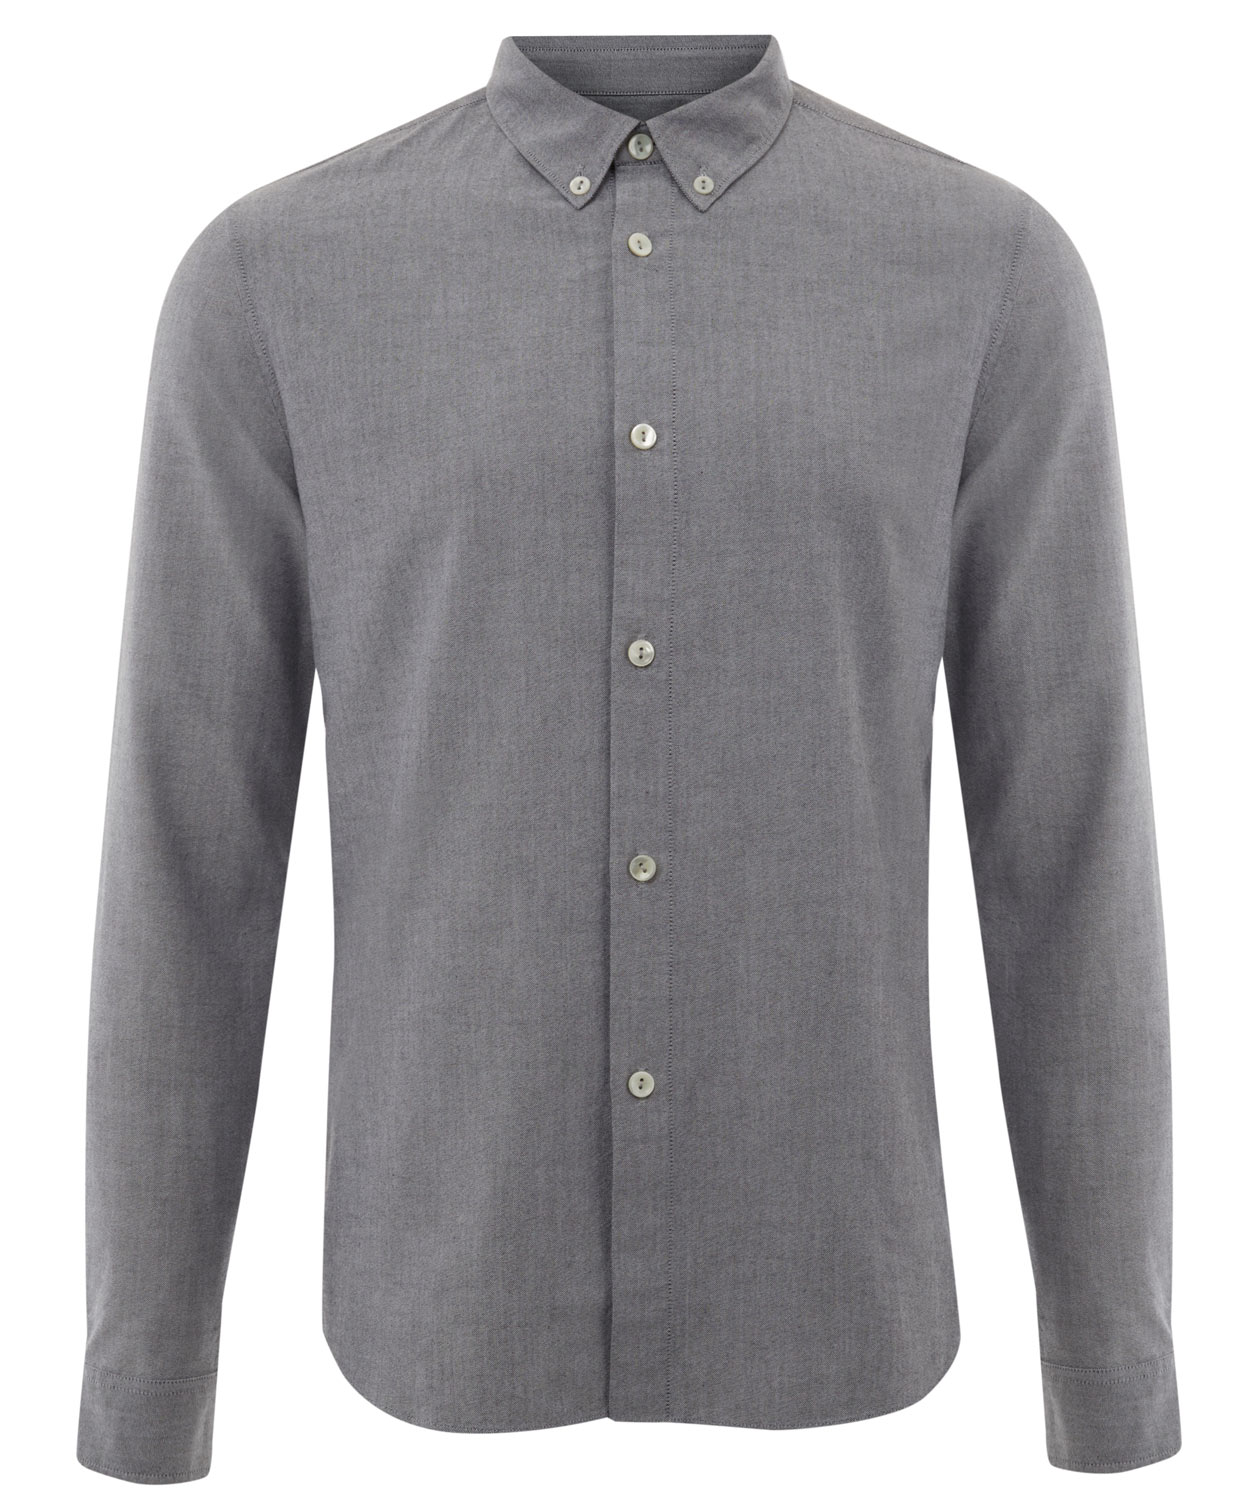 A.p.c. Mid Grey Buttondown Oxford Cotton Shirt in Gray for Men | Lyst